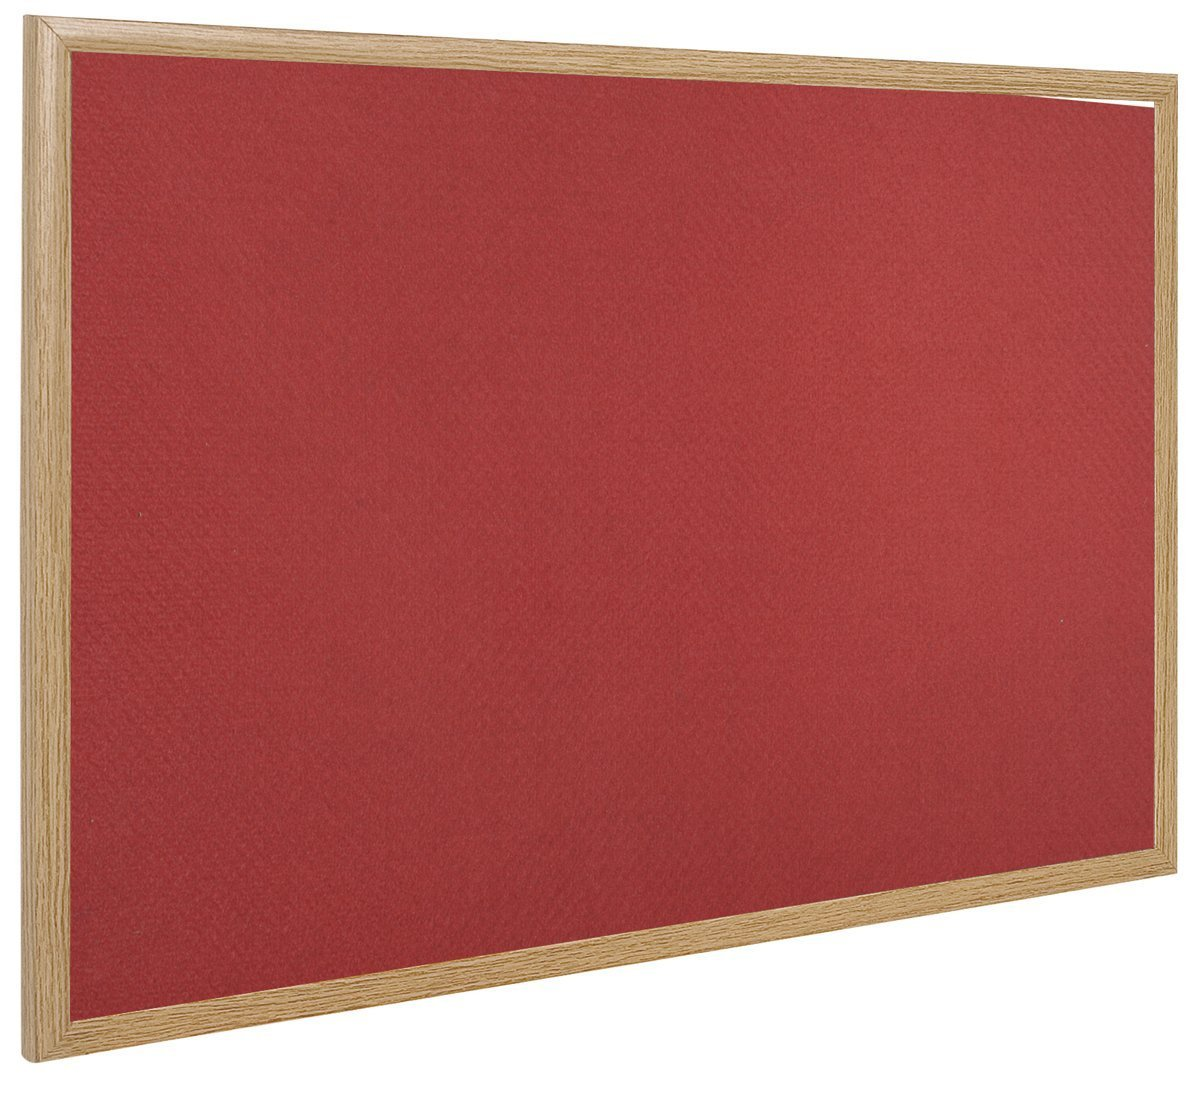 Magnetic Bi-Office Earth-It Exec Red Felt Ntcbrd Oak Frme 120x90cm